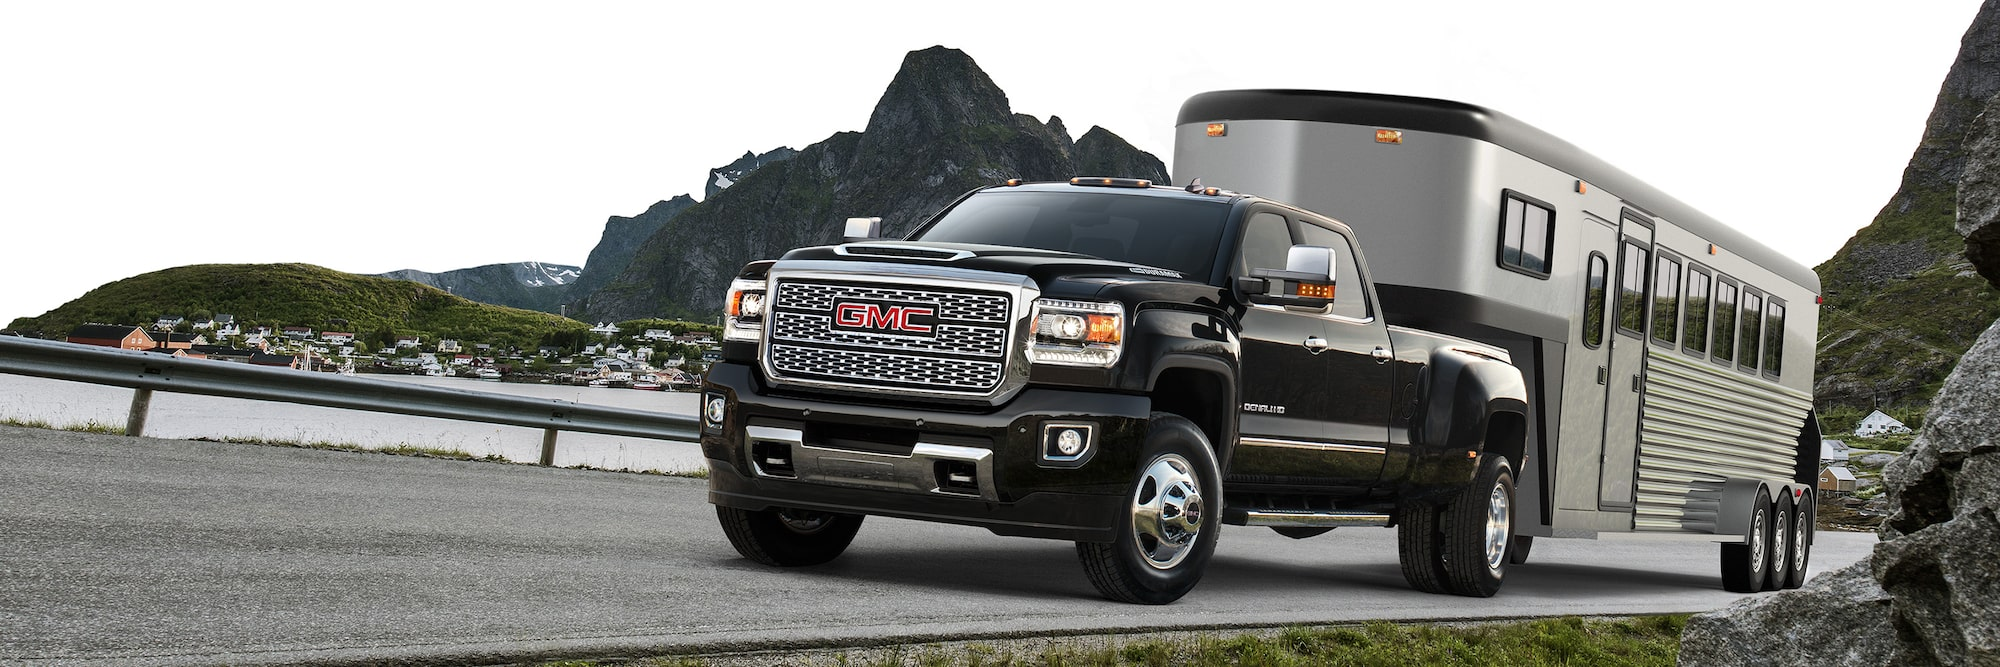 medium resolution of gmc life sierra hd 5th wheel package